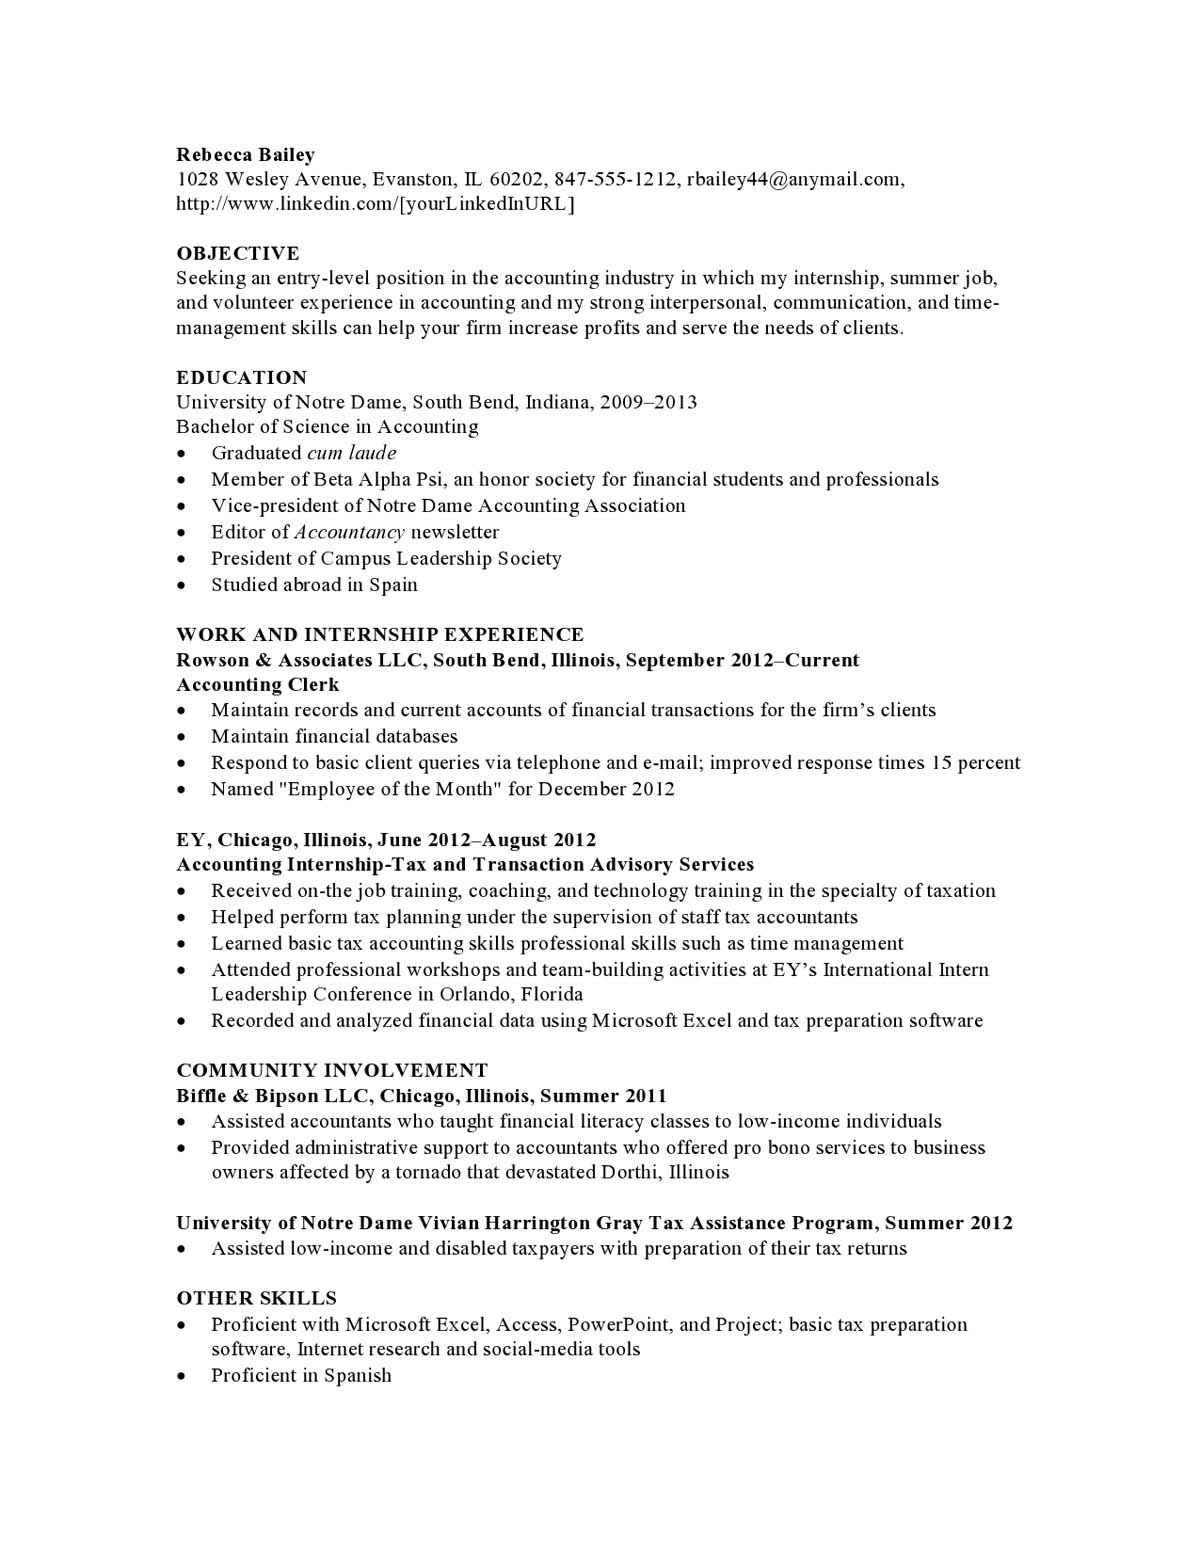 resume samples templates examples vault research crescoact19 dietitian college basketball Resume Research Resume Examples